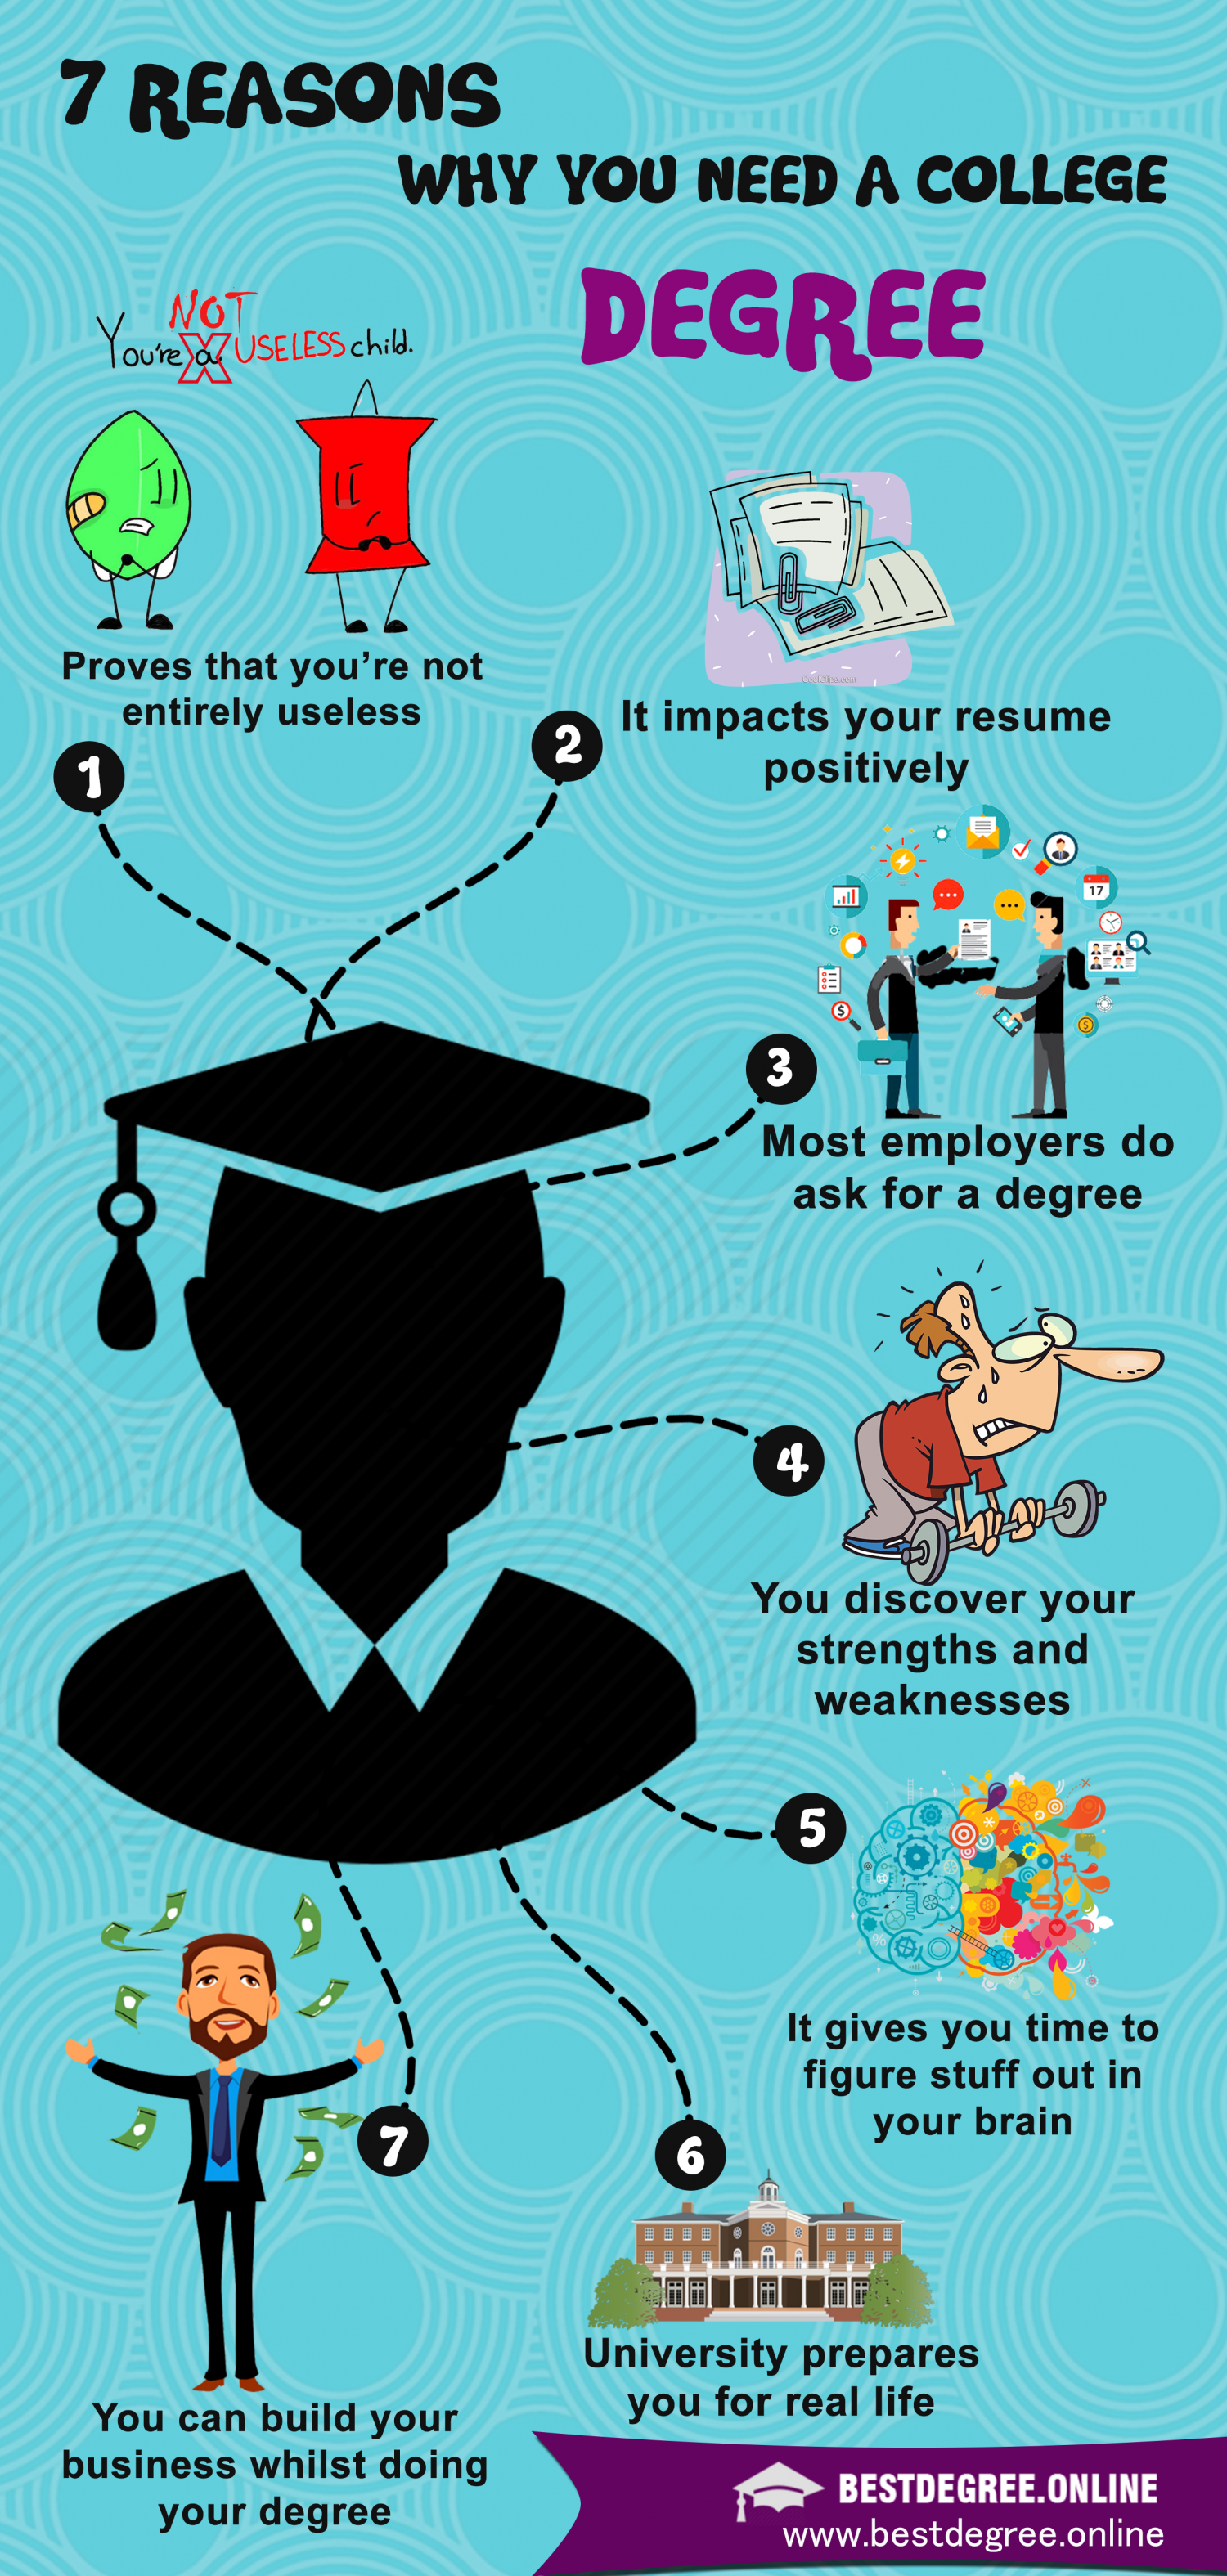 7 Reasons Why You Need a College Degree Infographic